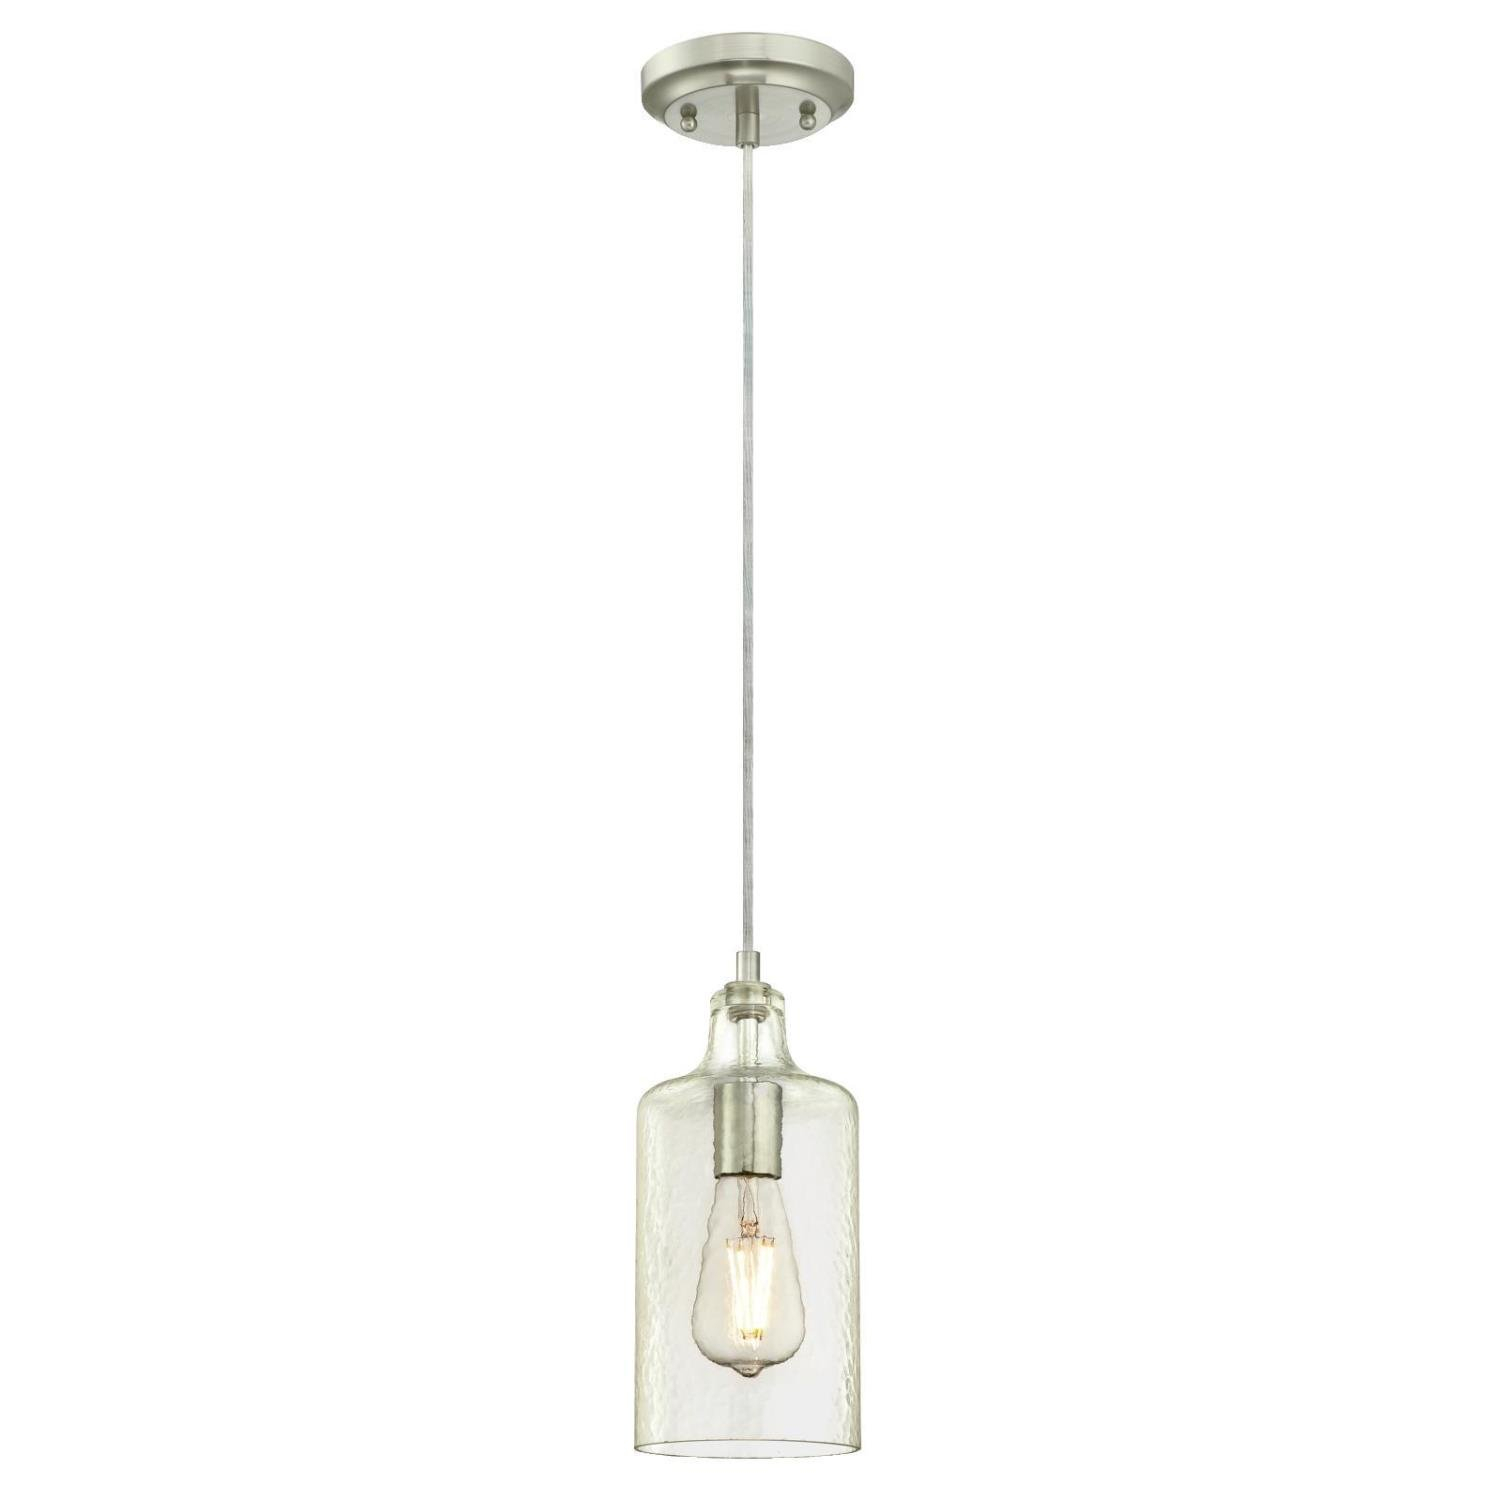 Jayce 1-Light Cylinder Pendant with regard to Jayce 1-Light Cylinder Pendants (Image 13 of 30)